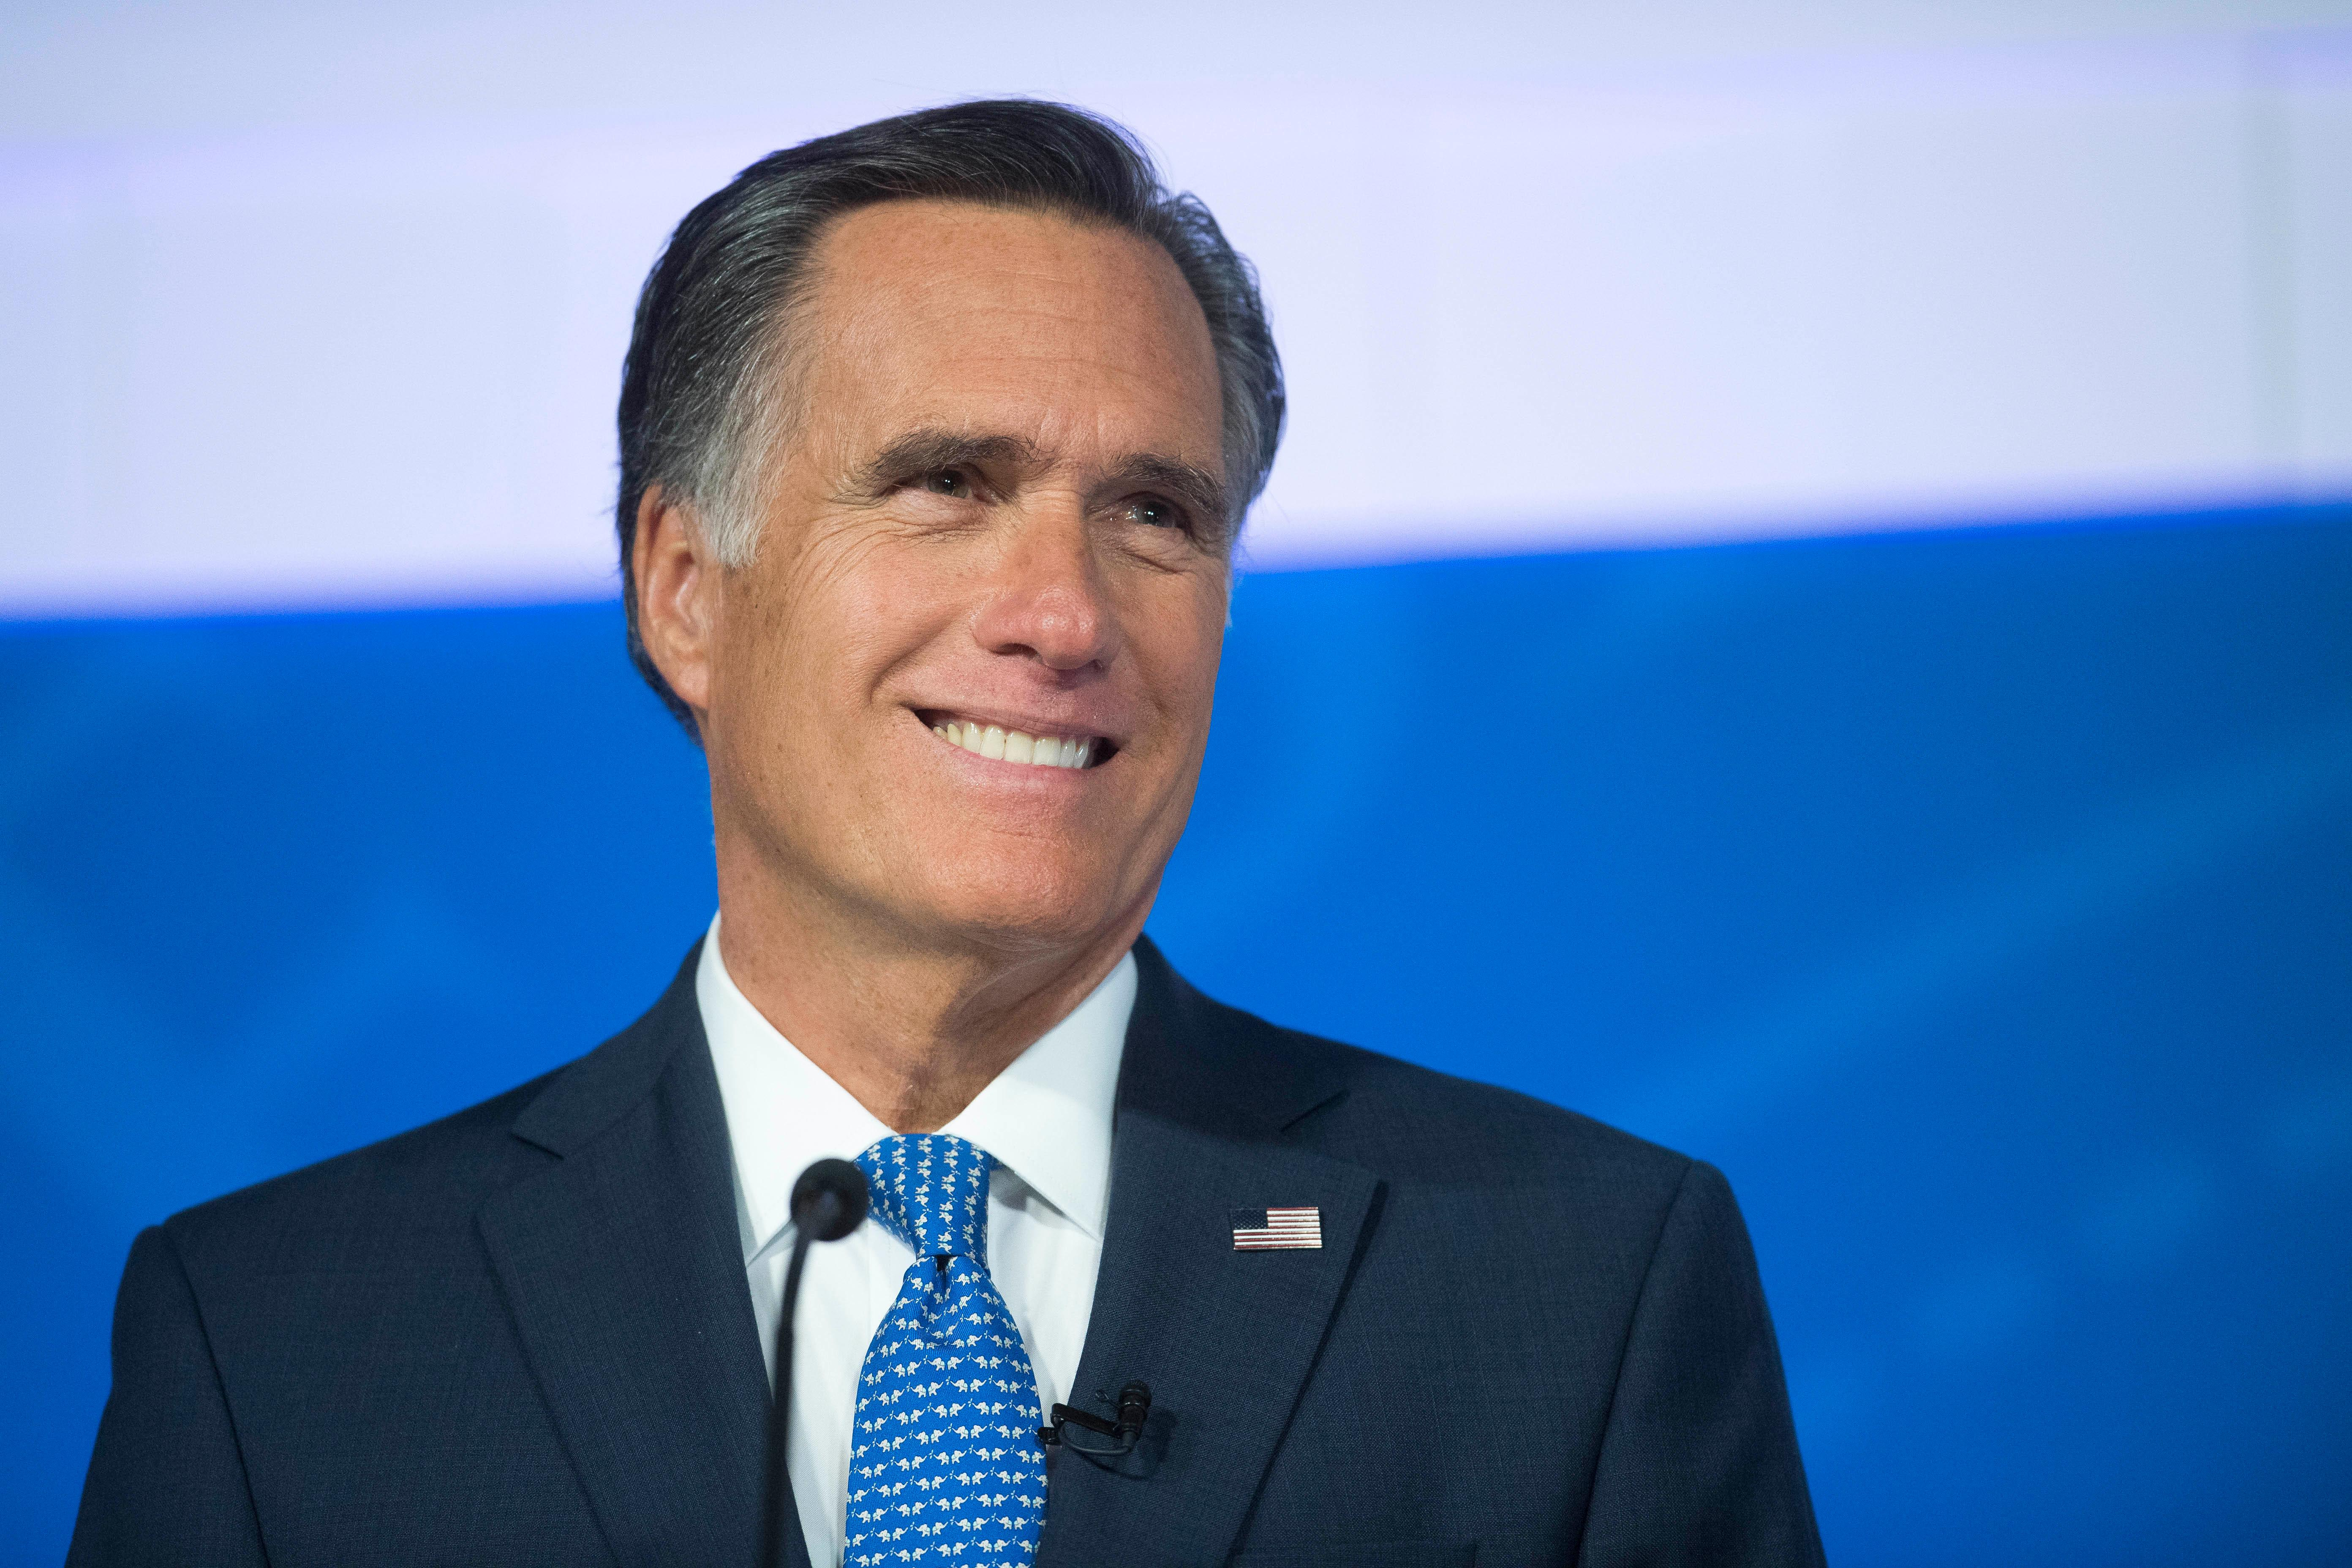 FILE--In this Oct. 9, 2018, file photo, Republican U.S. Senate candidate Mitt Romney is seen during the debate with U.S. Democratic Senate candidate Jenny Wilson in Cedar City, Utah. Romney took up the question of water use in Utah, one of the driest states in the country, during the debate as he runs for a U.S. Senate seat in his adopted home state. (James M. Dobson/The Spectrum via AP, file)